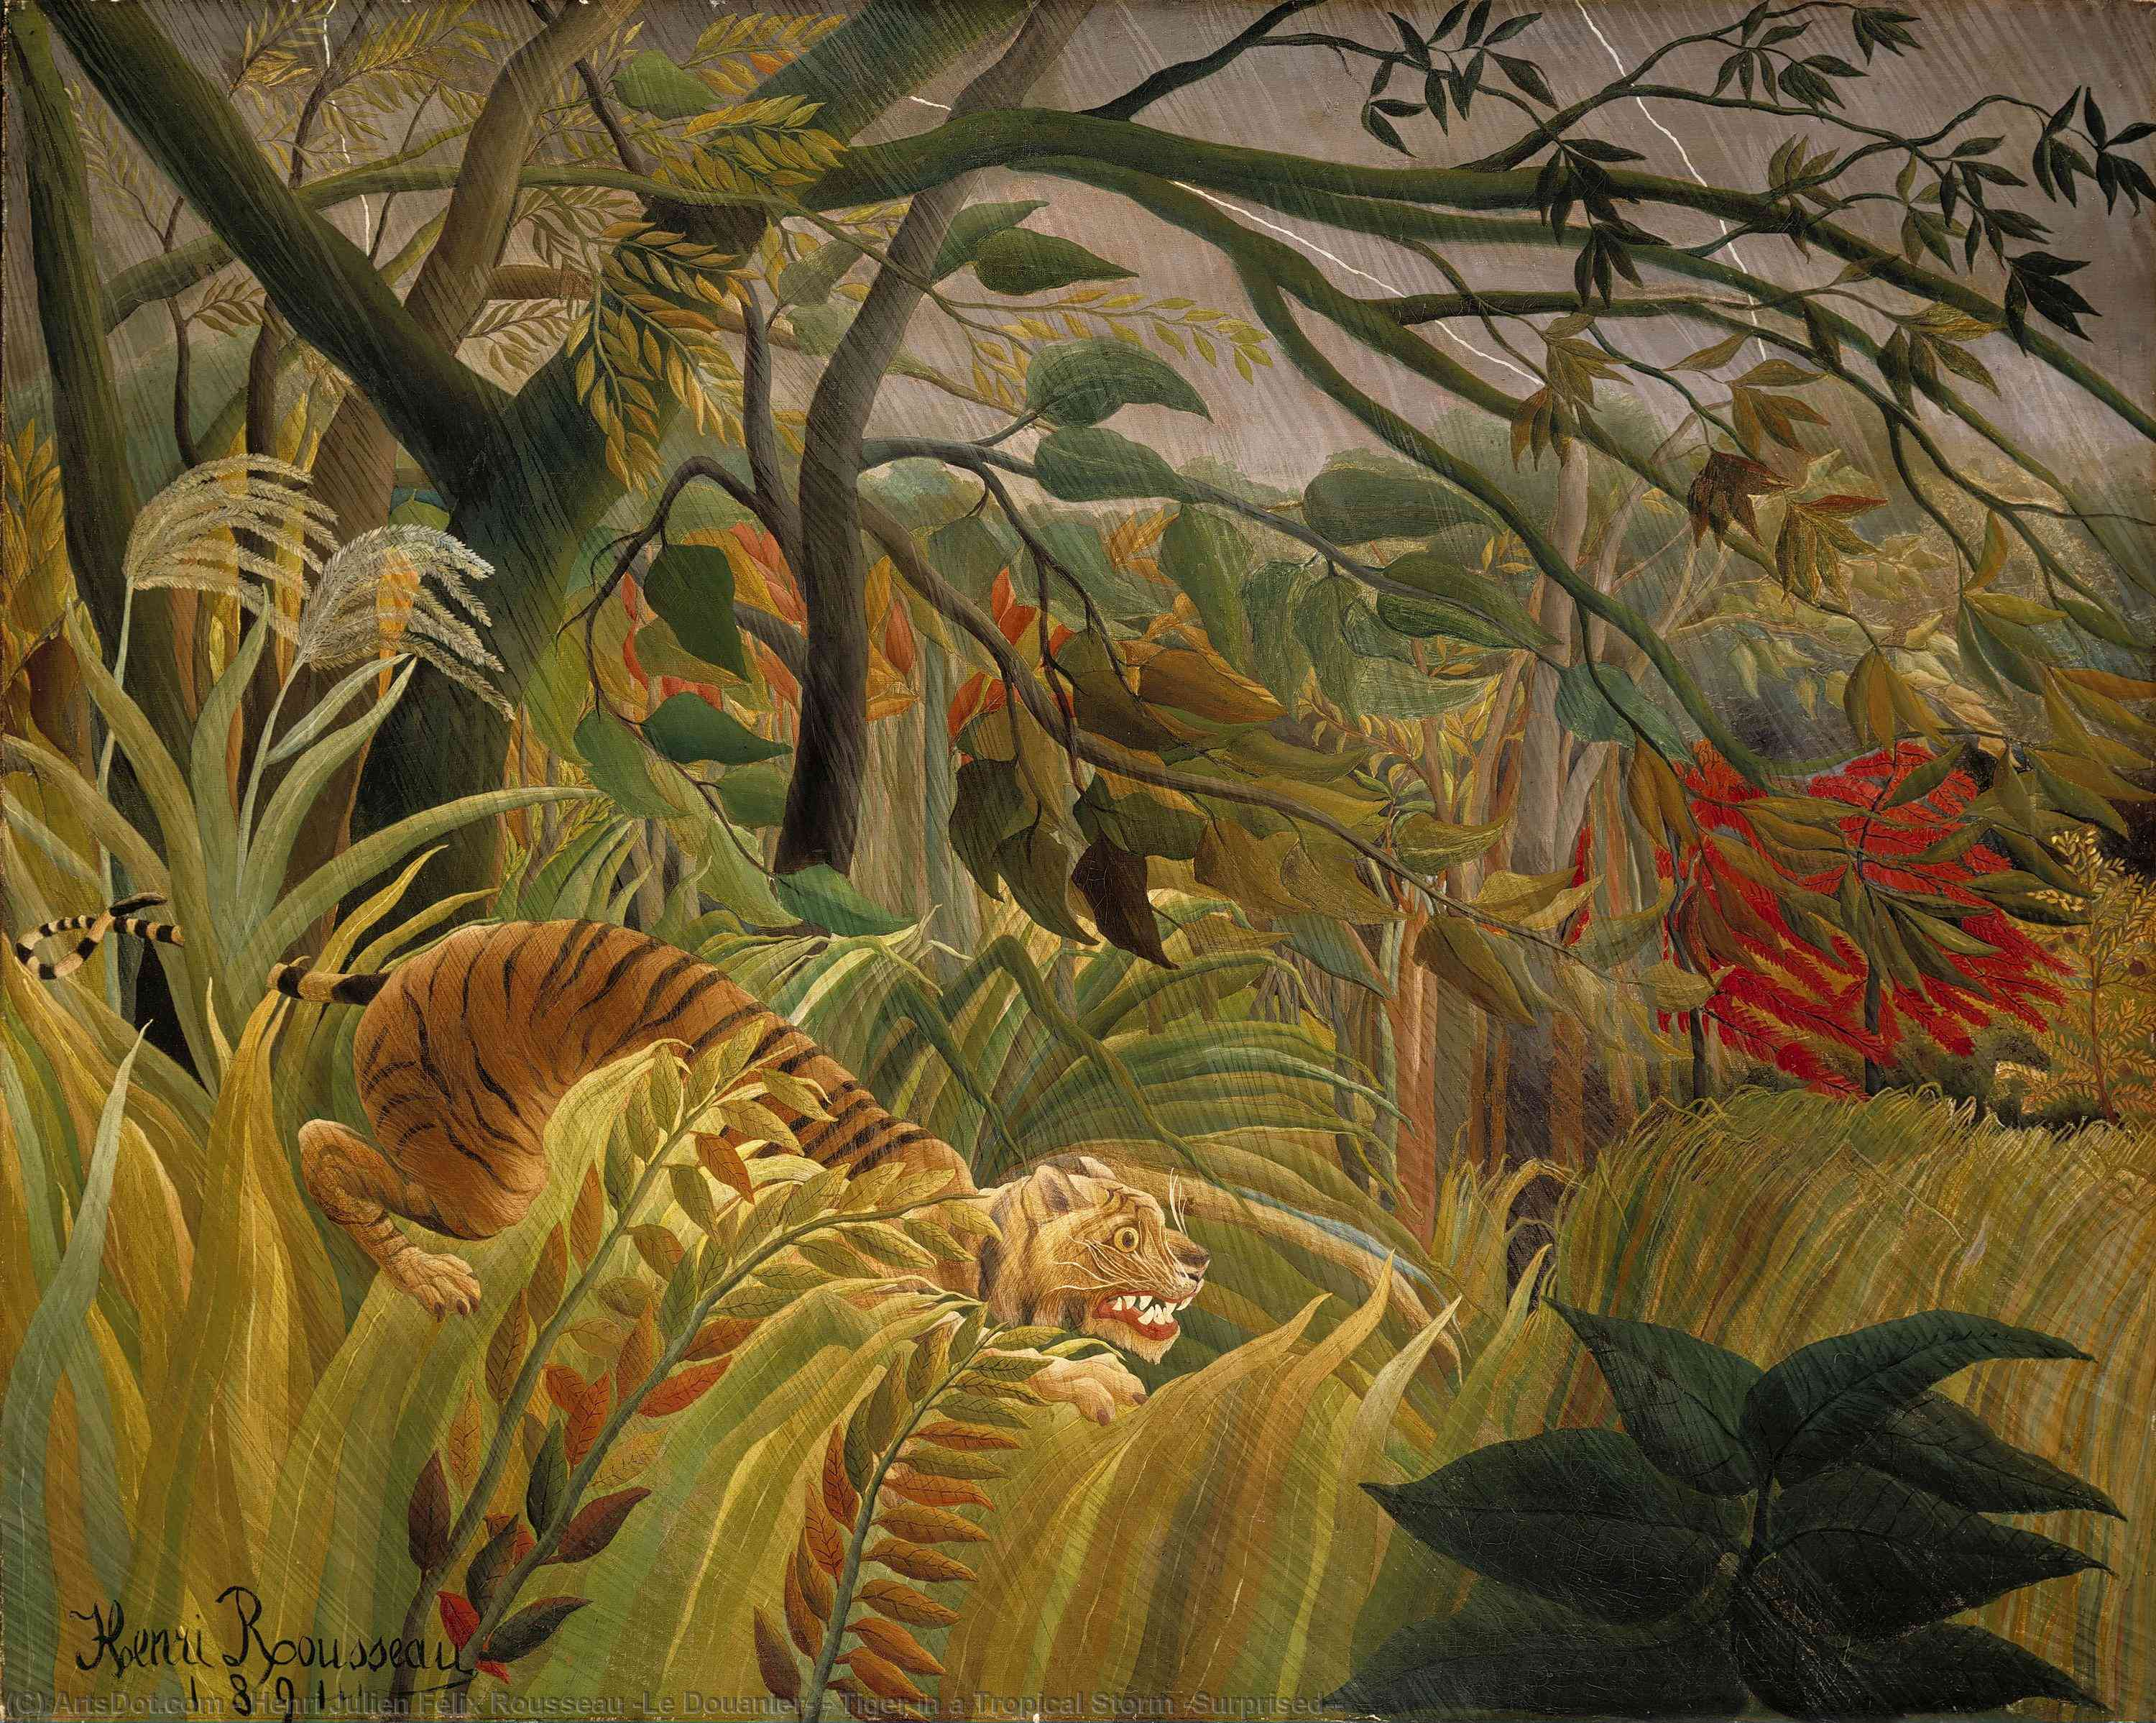 Wikioo.org - The Encyclopedia of Fine Arts - Painting, Artwork by Henri Julien Félix Rousseau (Le Douanier) - Tiger in a Tropical Storm (Surprised!)